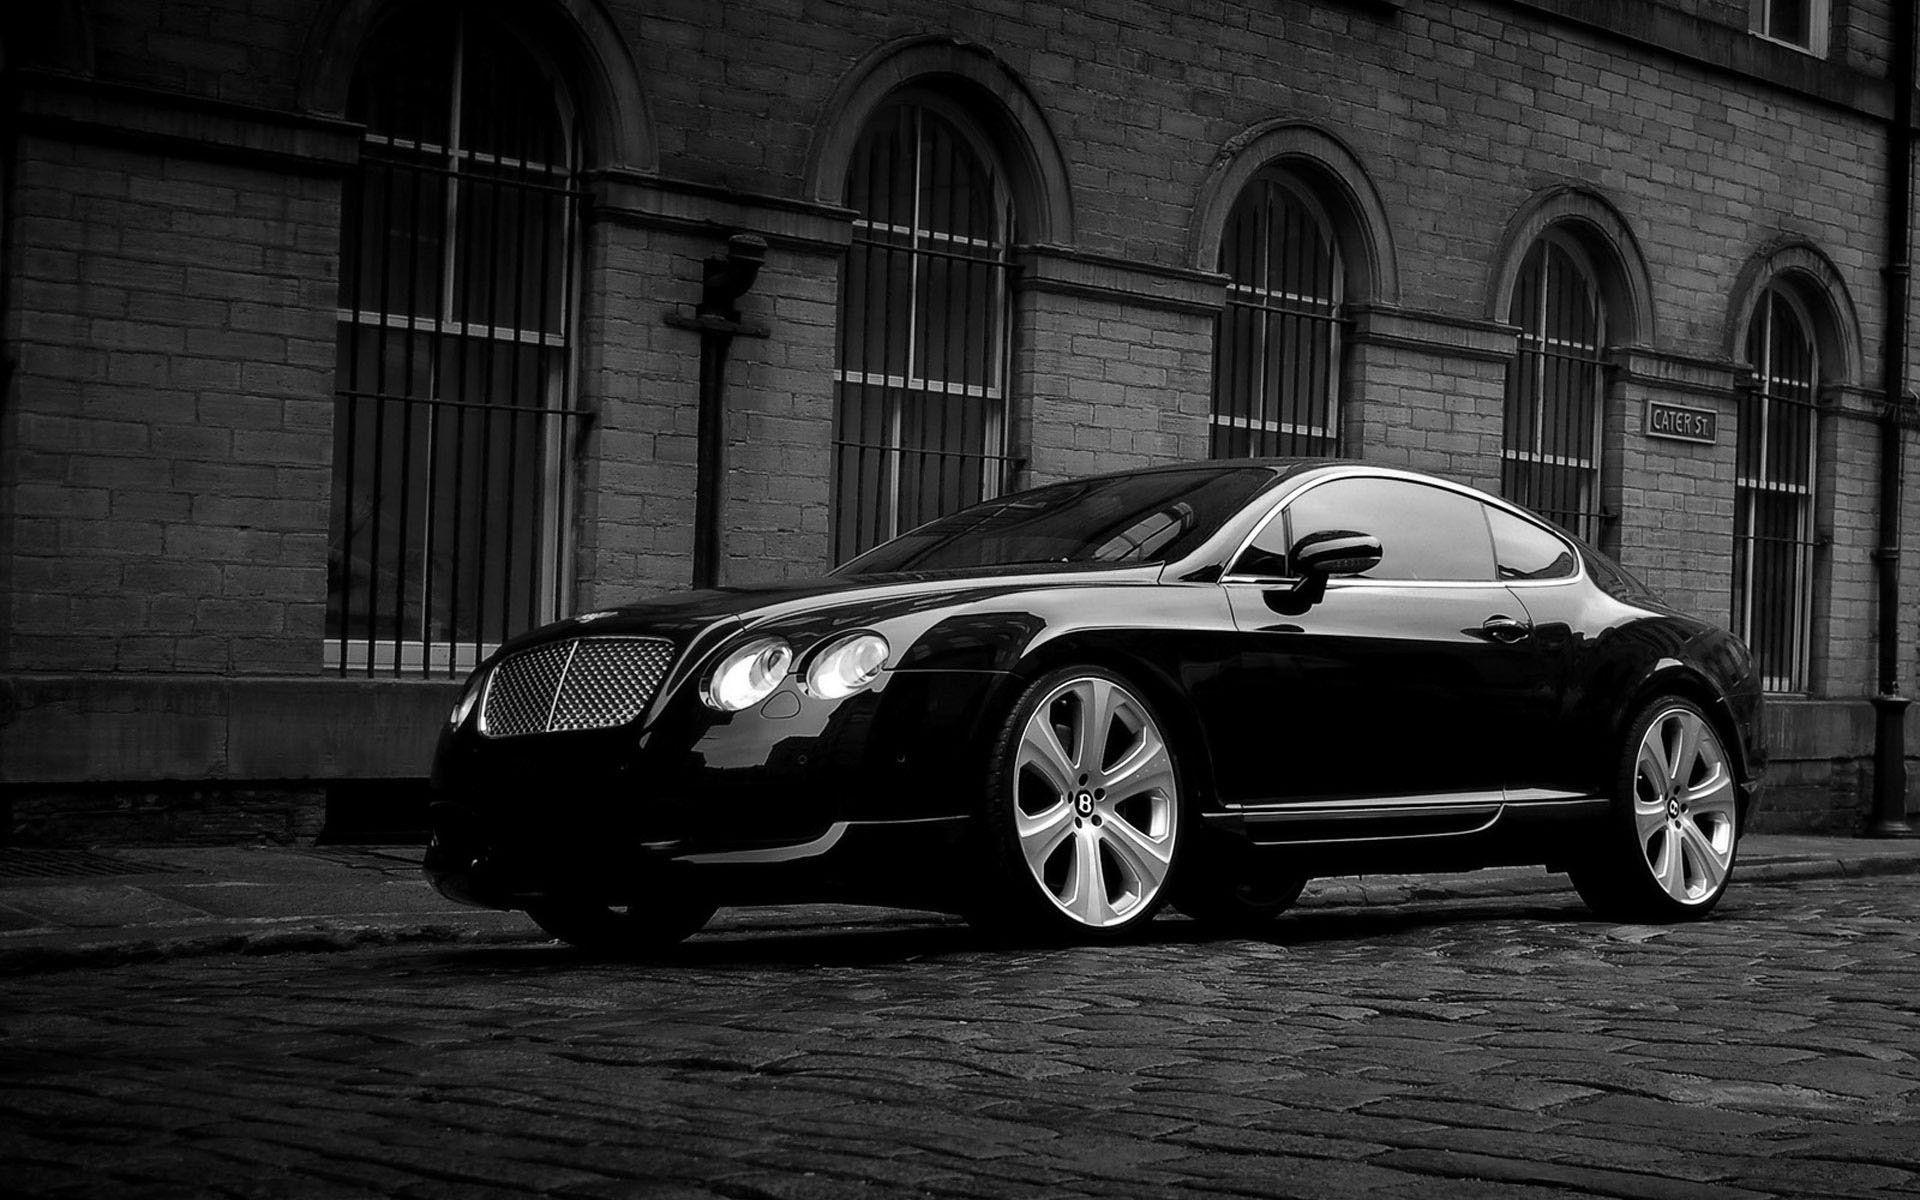 Bentley Continental Gt 465306 - WallDevil